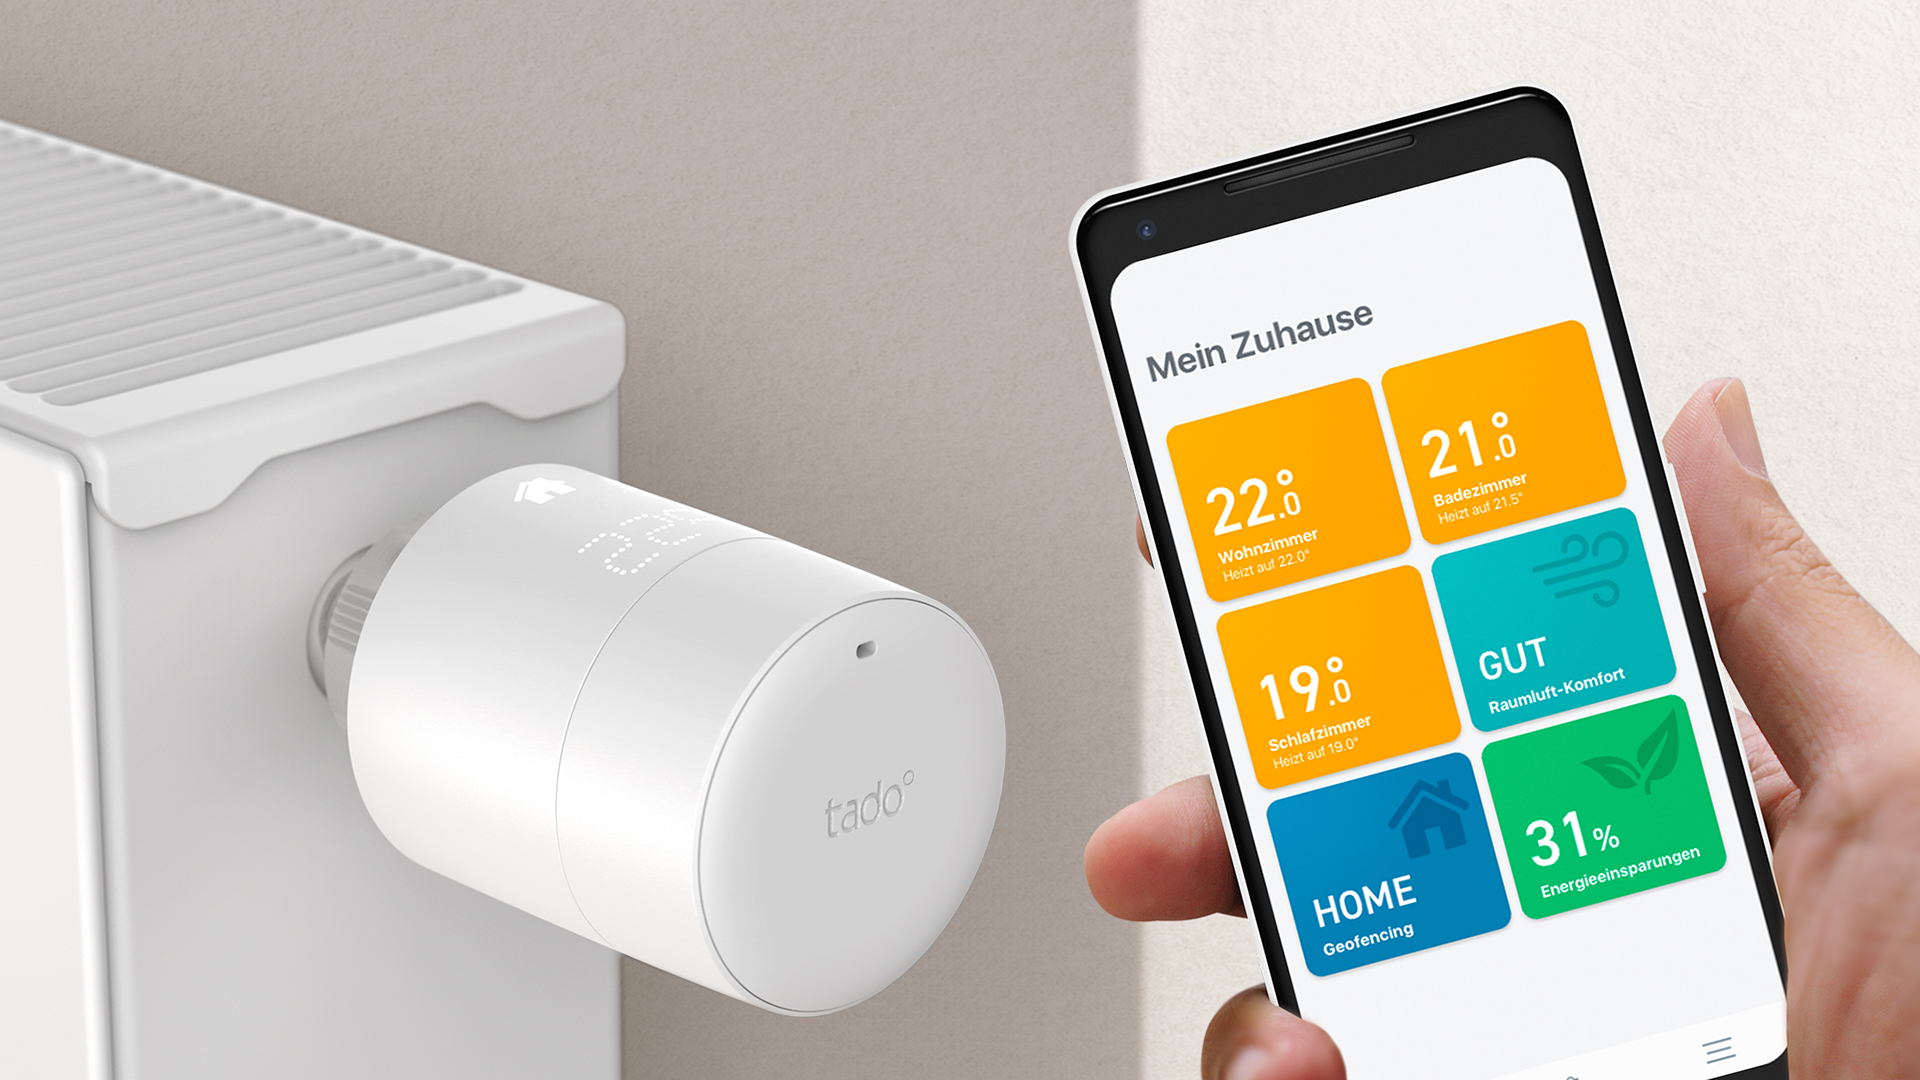 Top 10 Smart Home Gadgets 2019 - tado° Smartes Thermostat V3+ (DigitaleWelt)